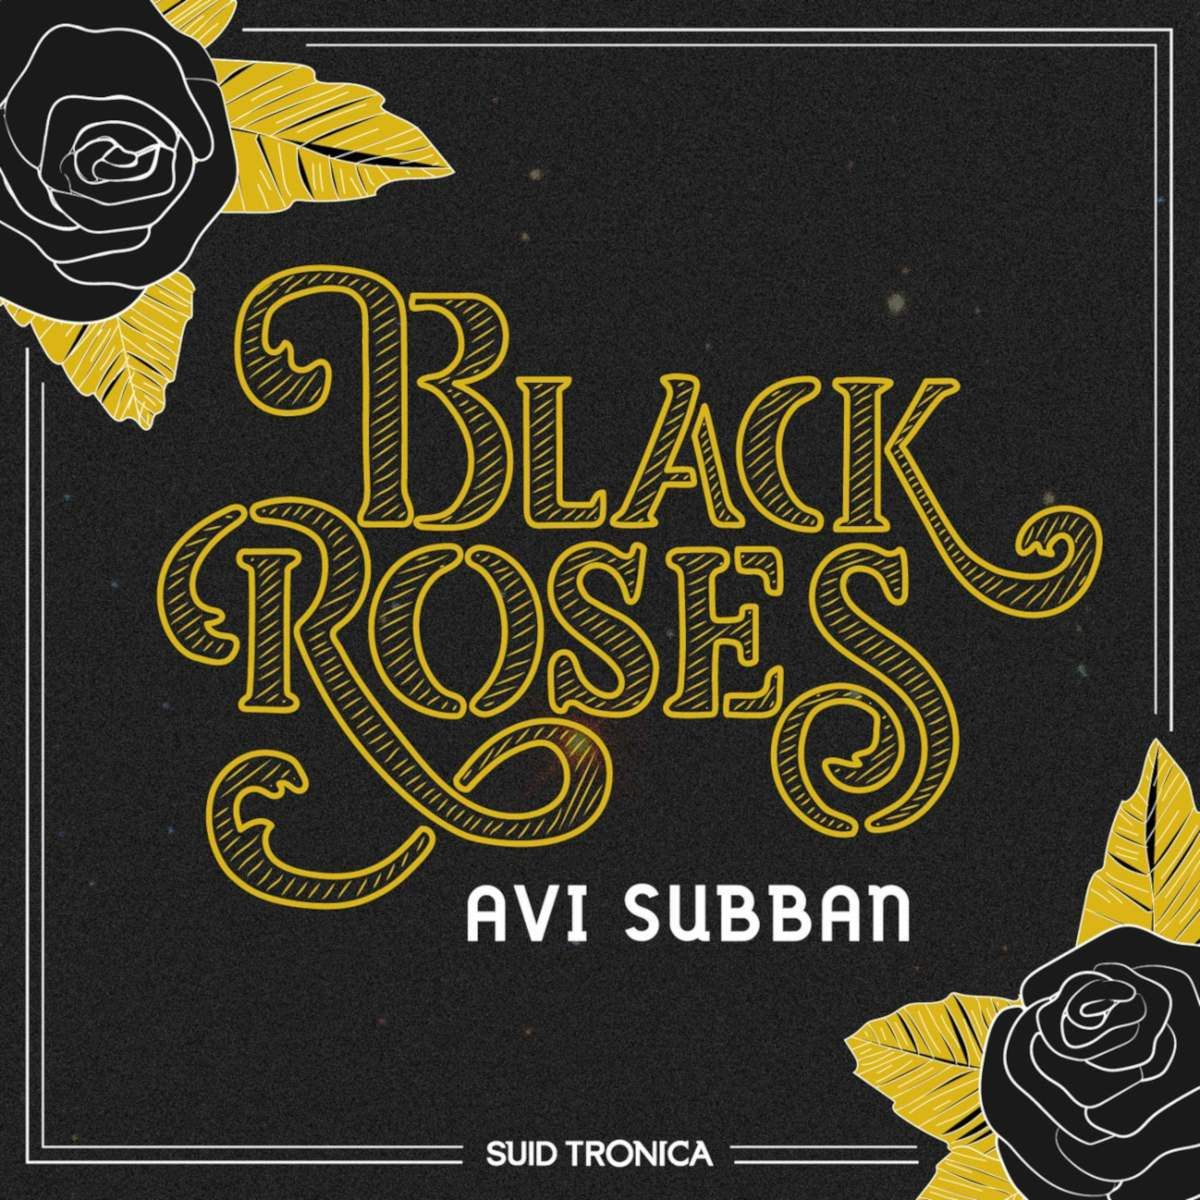 Avi Subban Black Roses EP Black rose, Deep house music